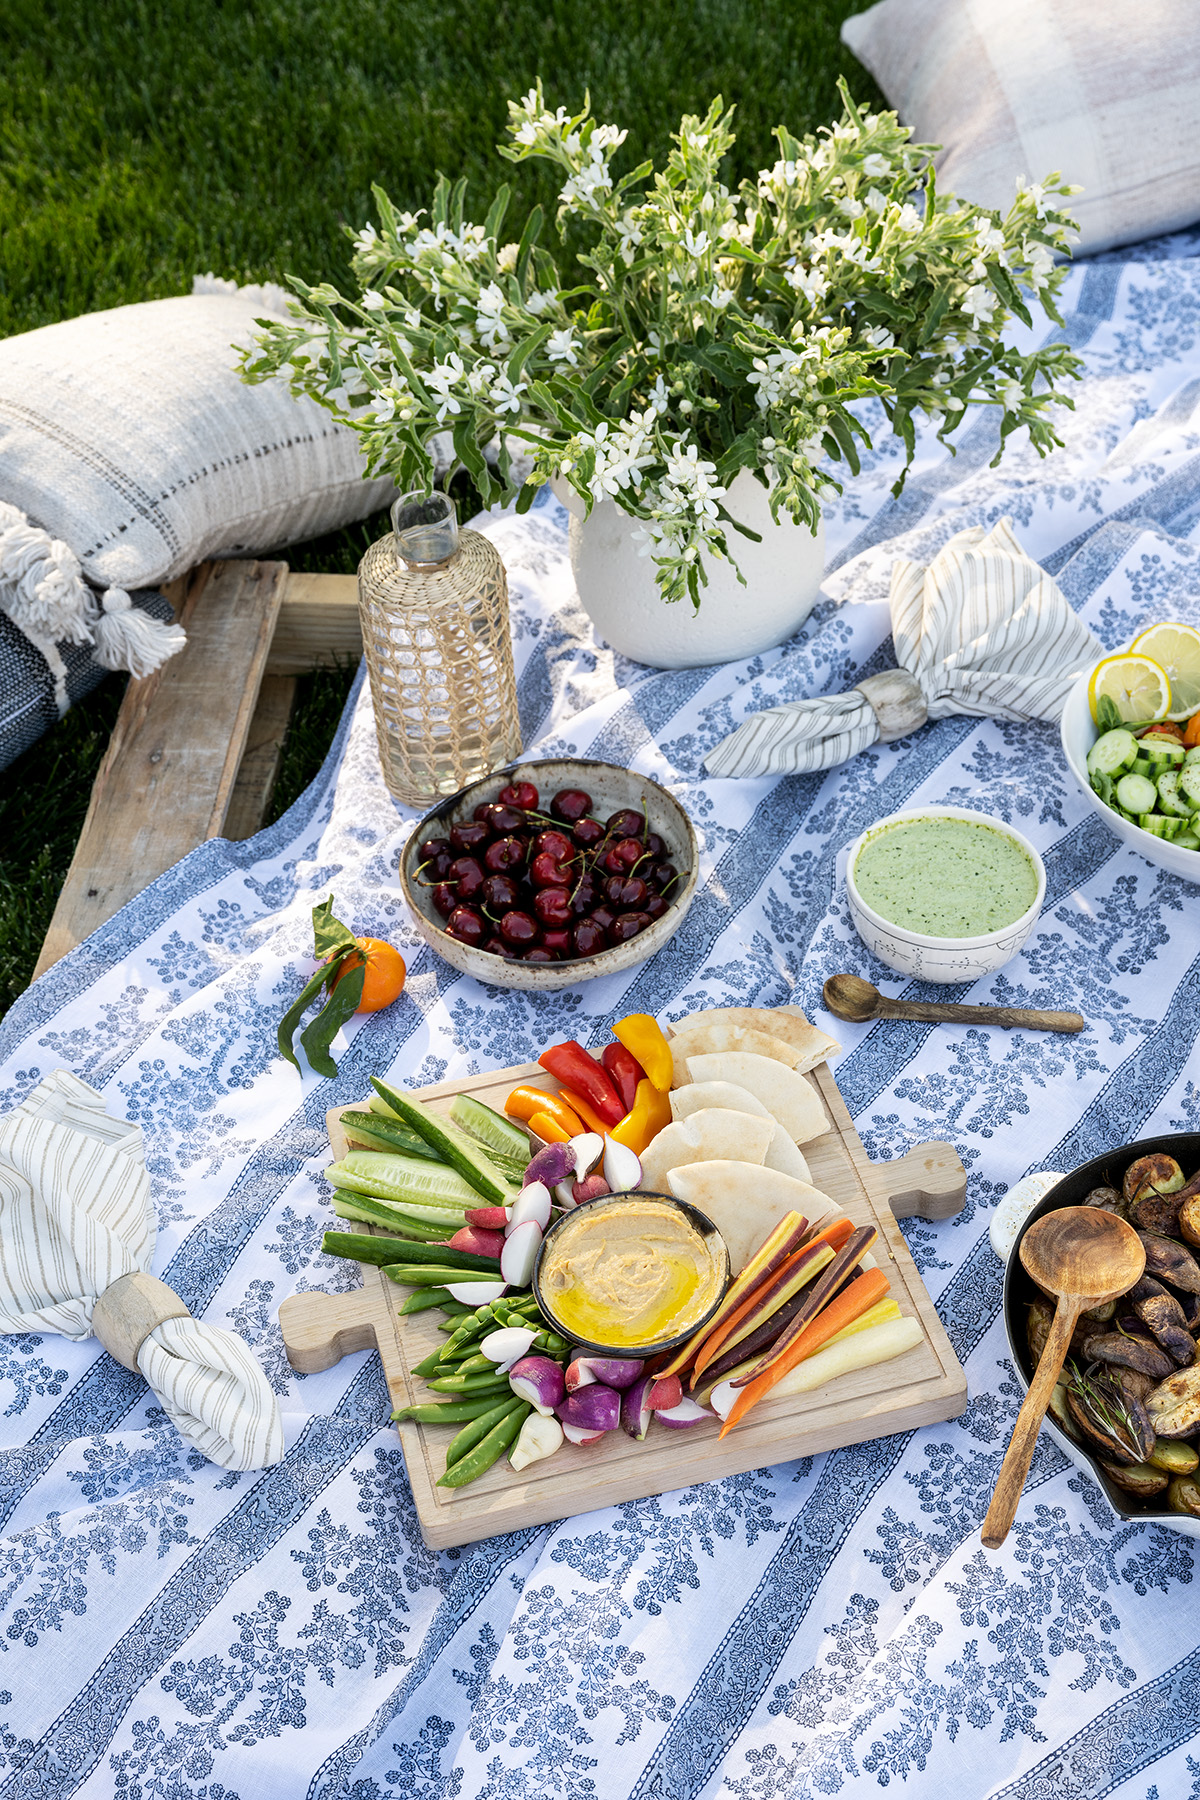 Our Guide to Creating the Perfect Summer Picnic